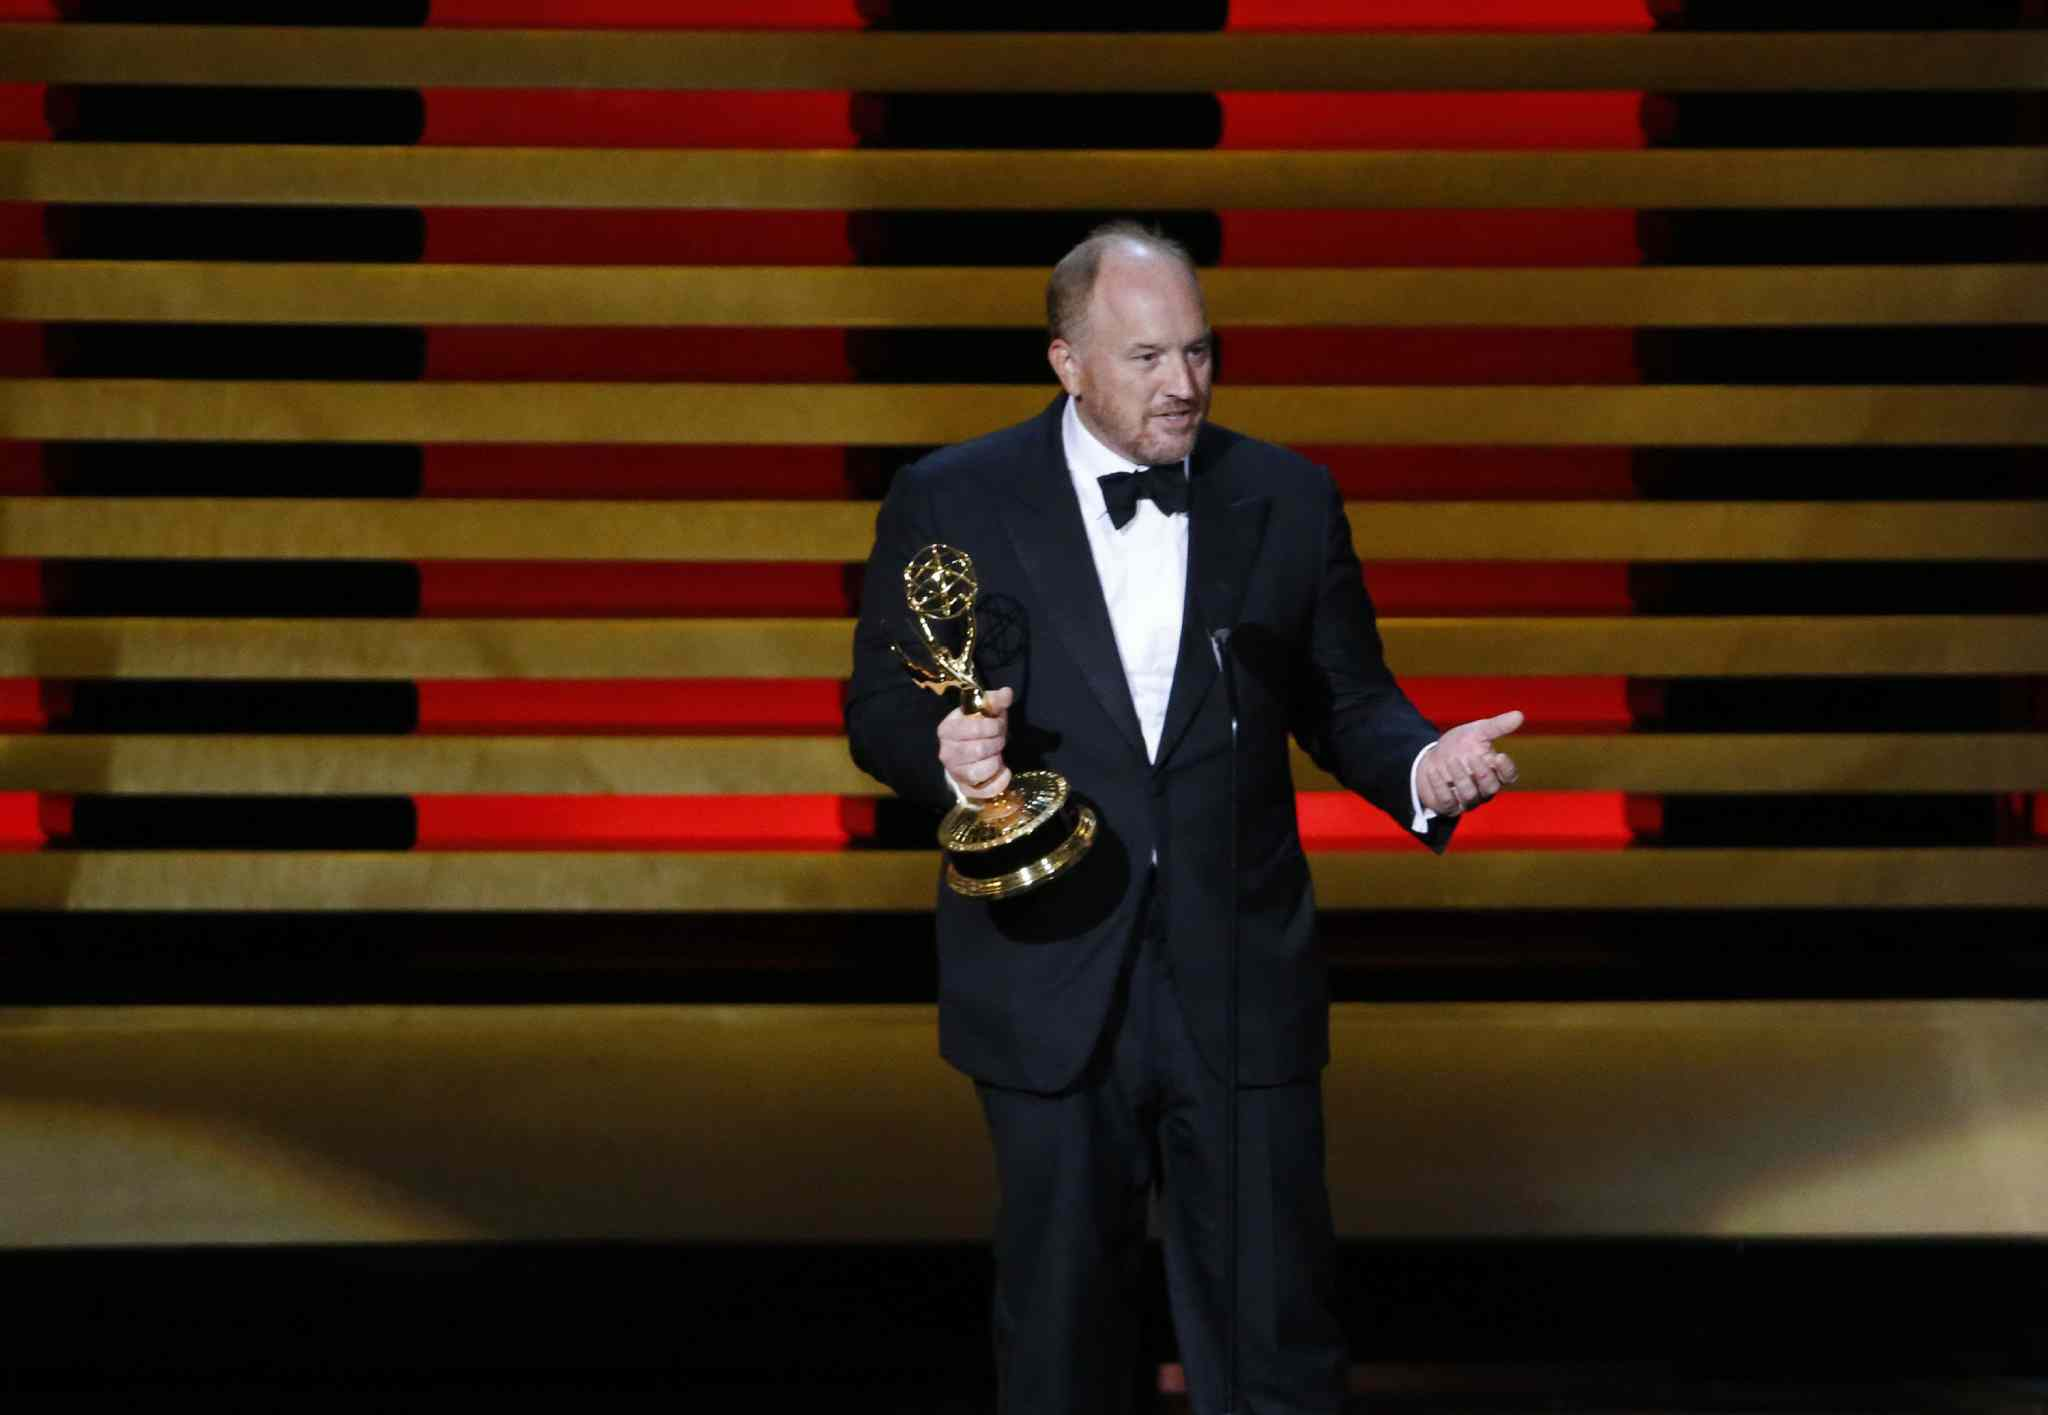 Louis C.K. accepts his Emmy for comedy series' writing for Louie.